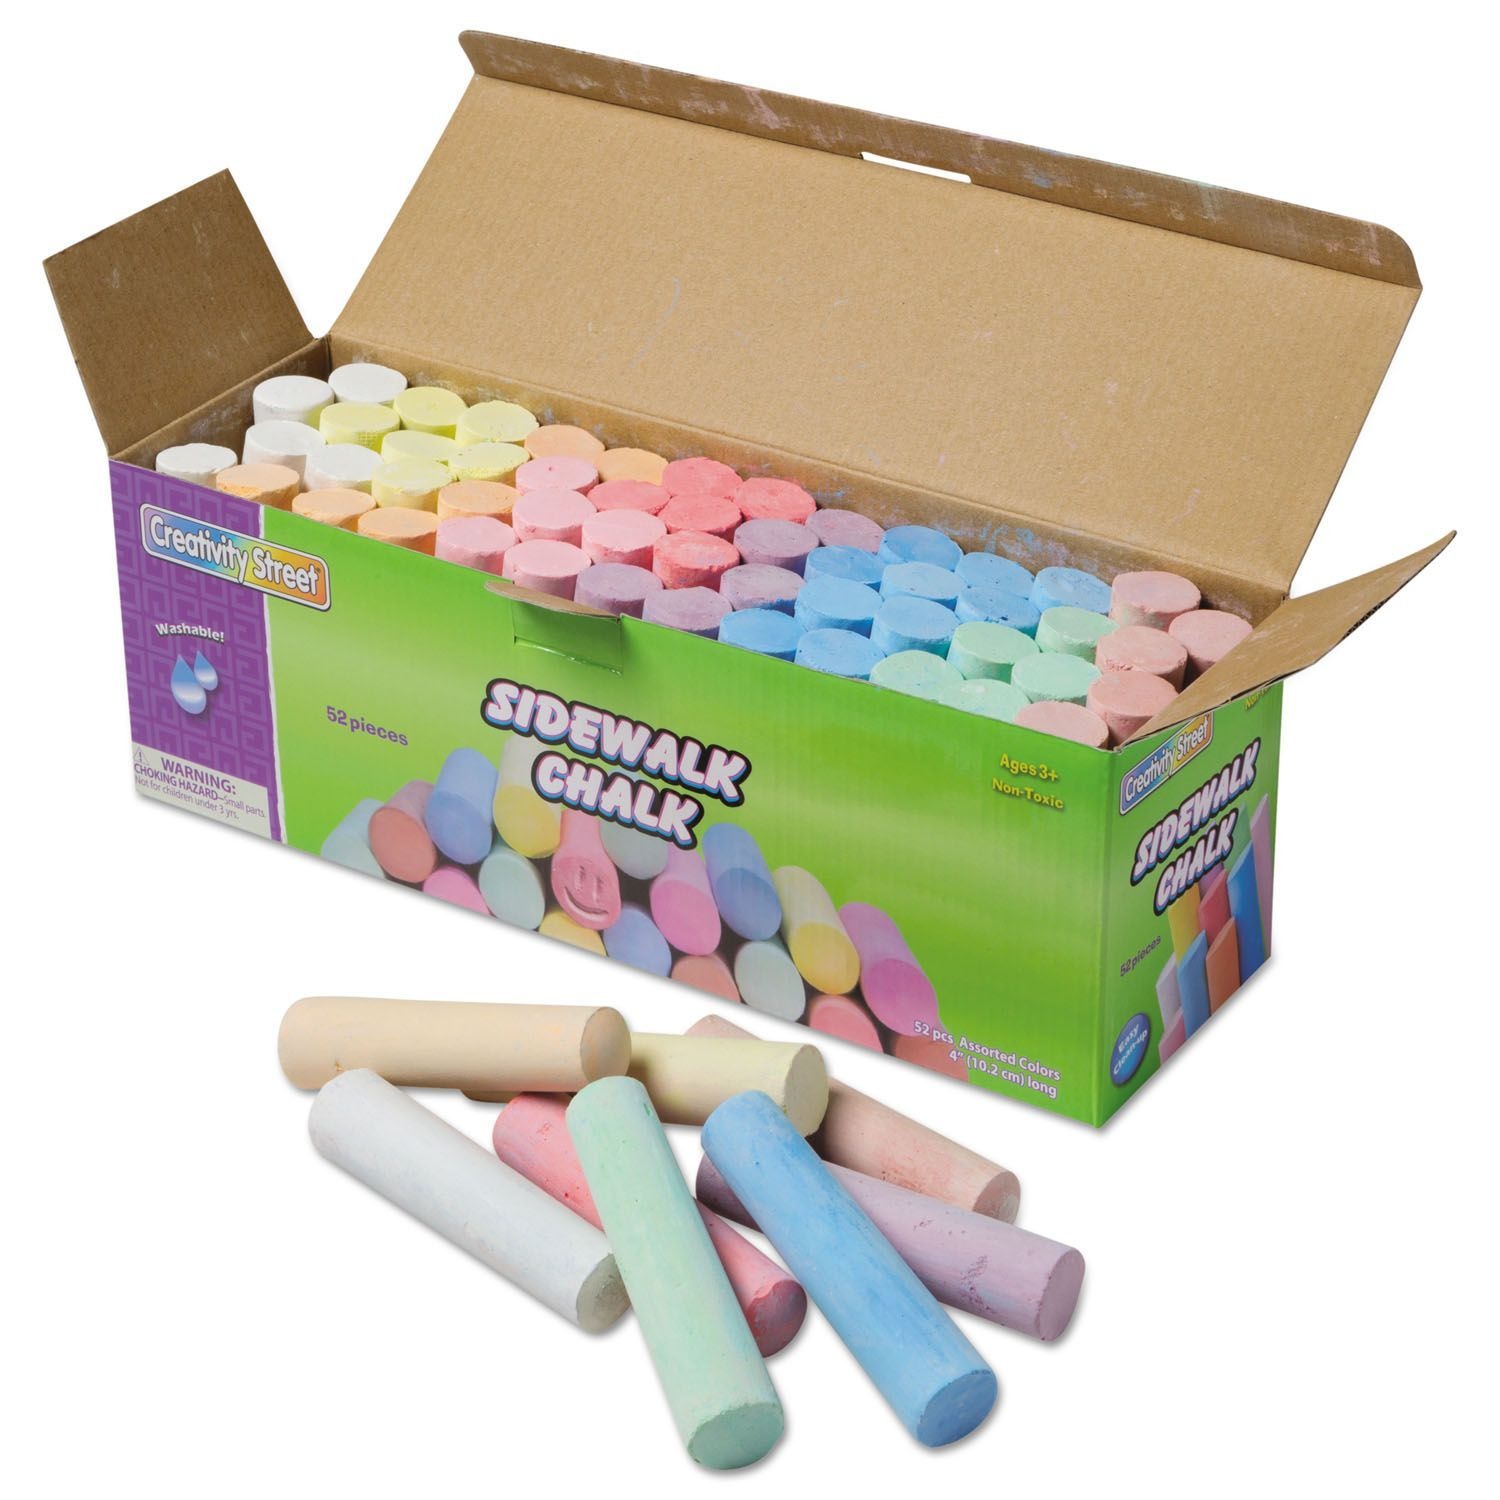 Pack of 2 Jumbo Sidewalk Chalk - 52 Pieces per Container